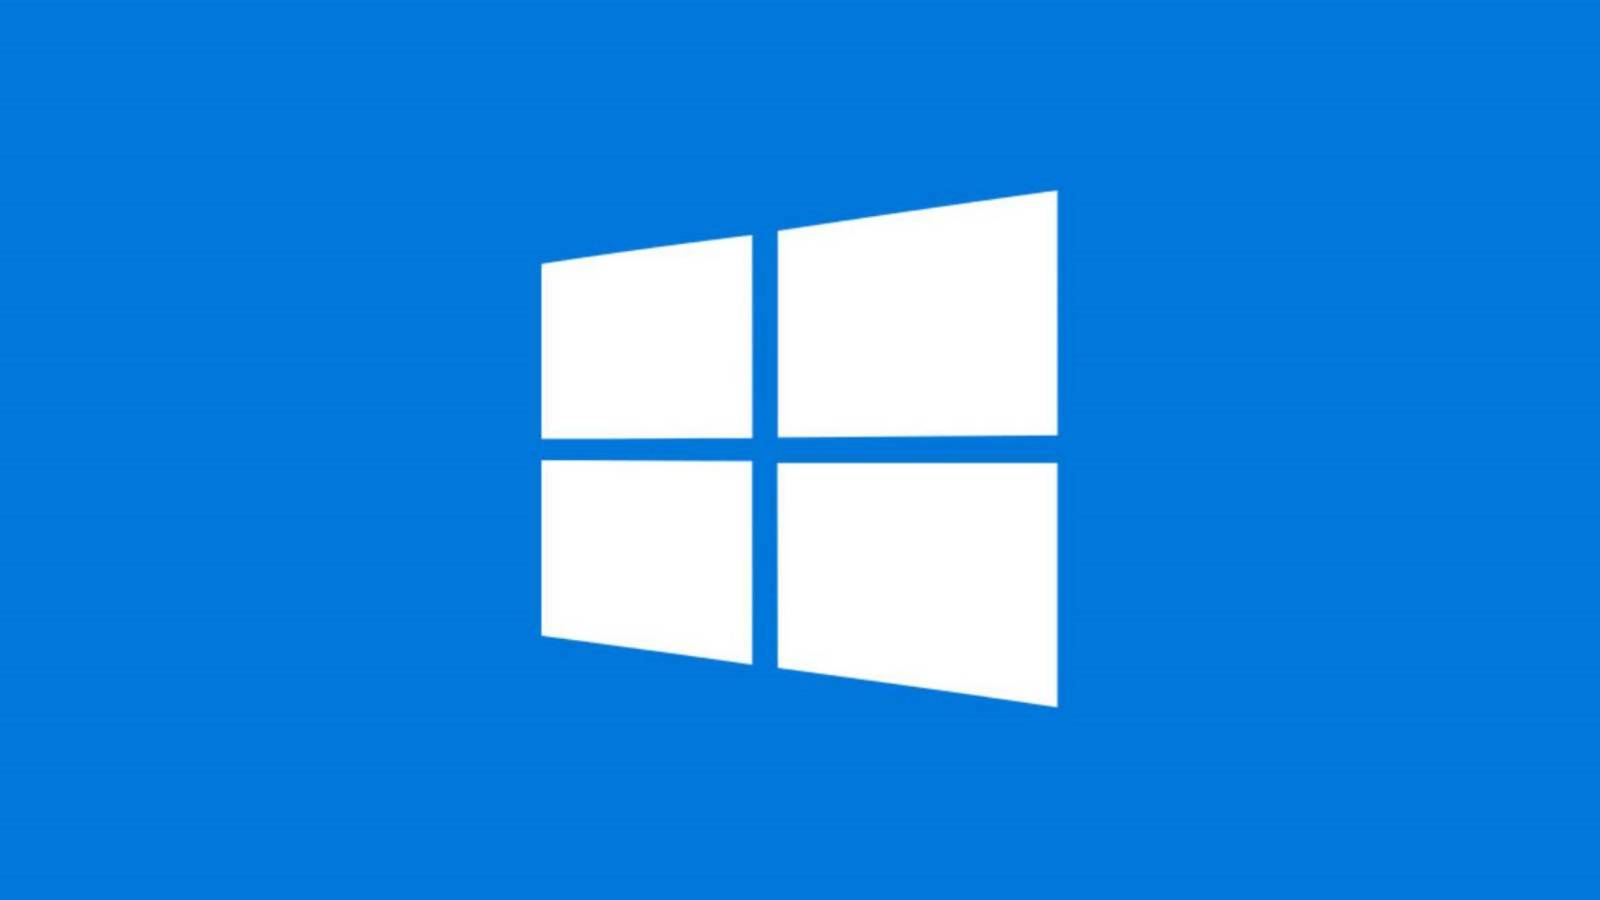 Windows 10 descoperire